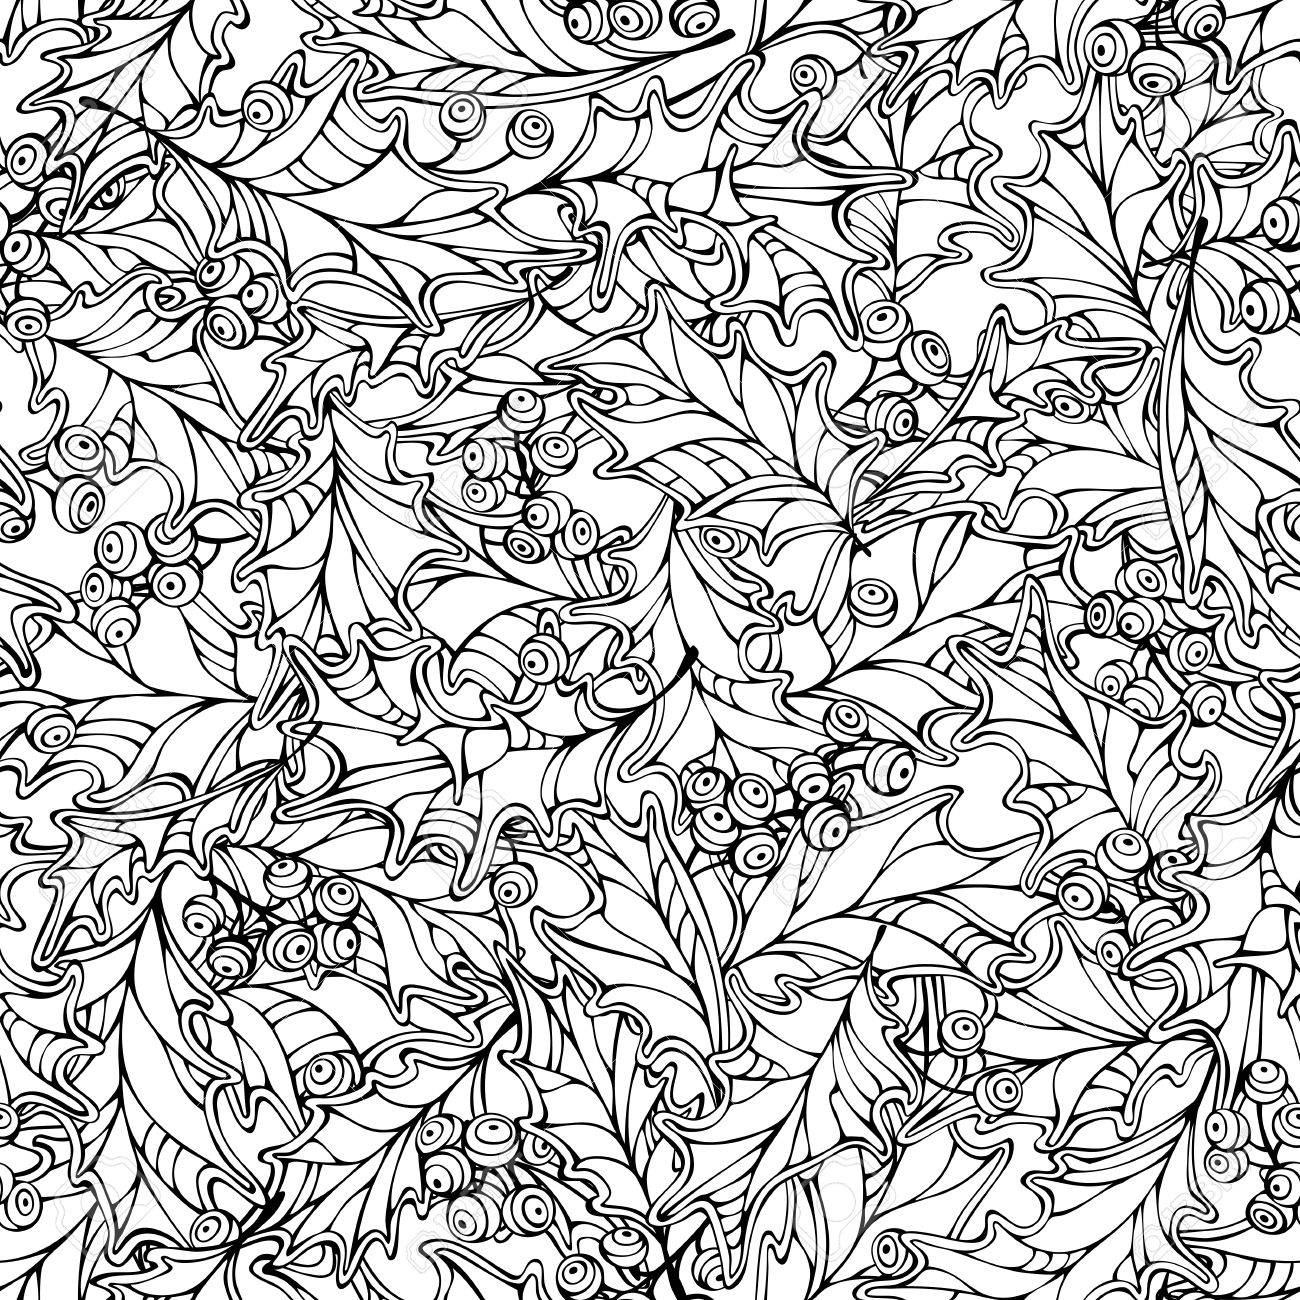 1300x1300 Christmas Holly Berries Seamless Pattern. Black And White